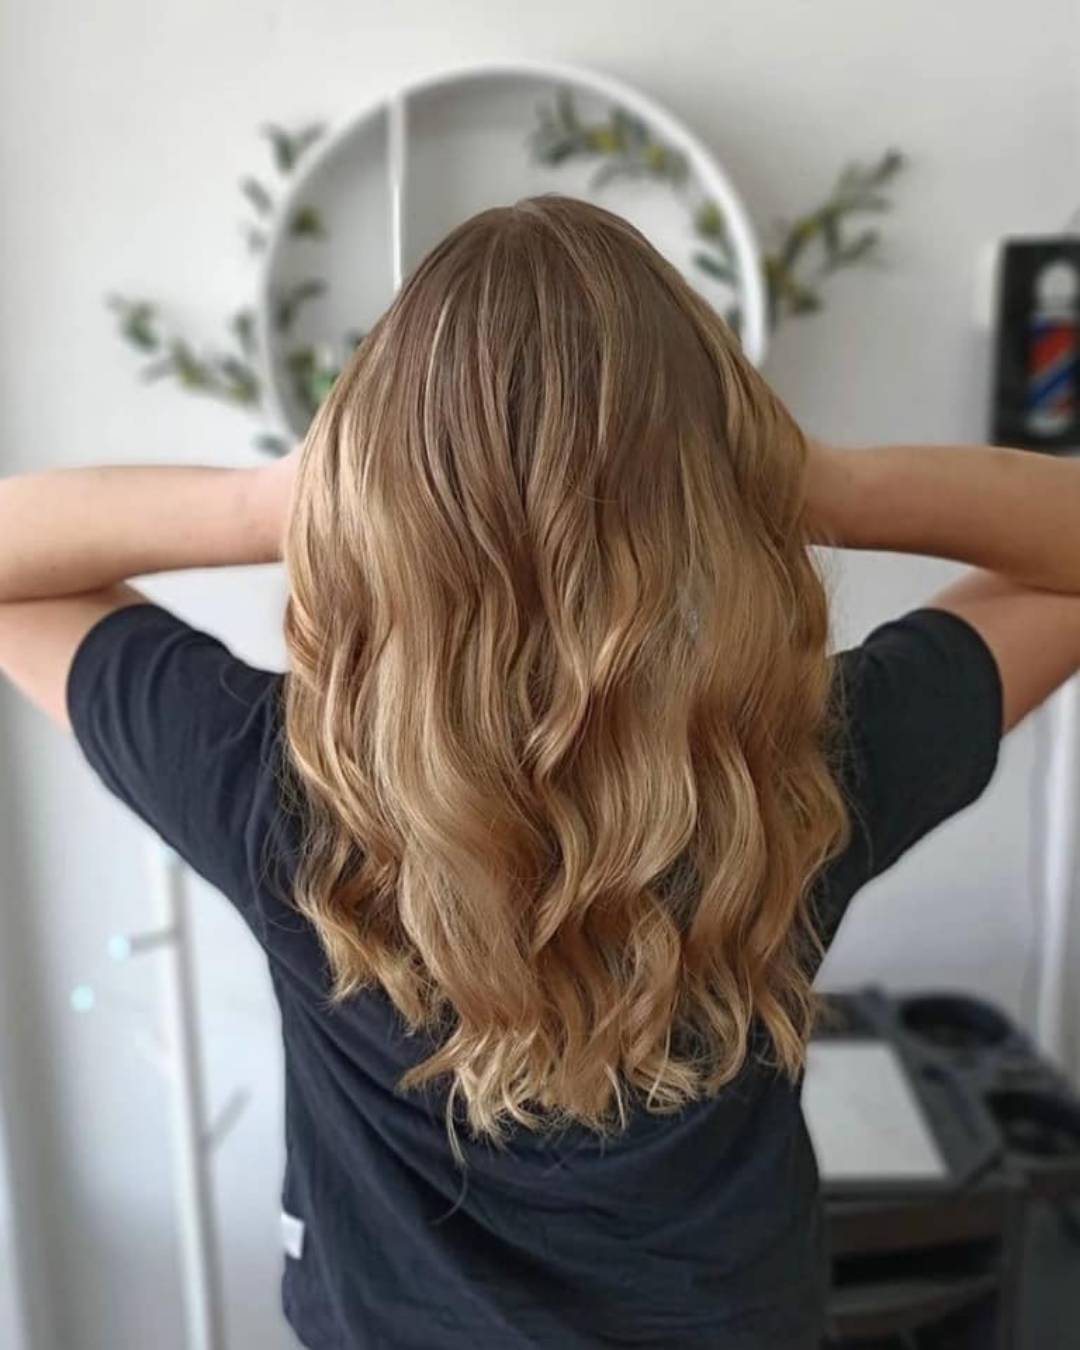 Woman posing with her beautiful hair after a hair cut in the salon.